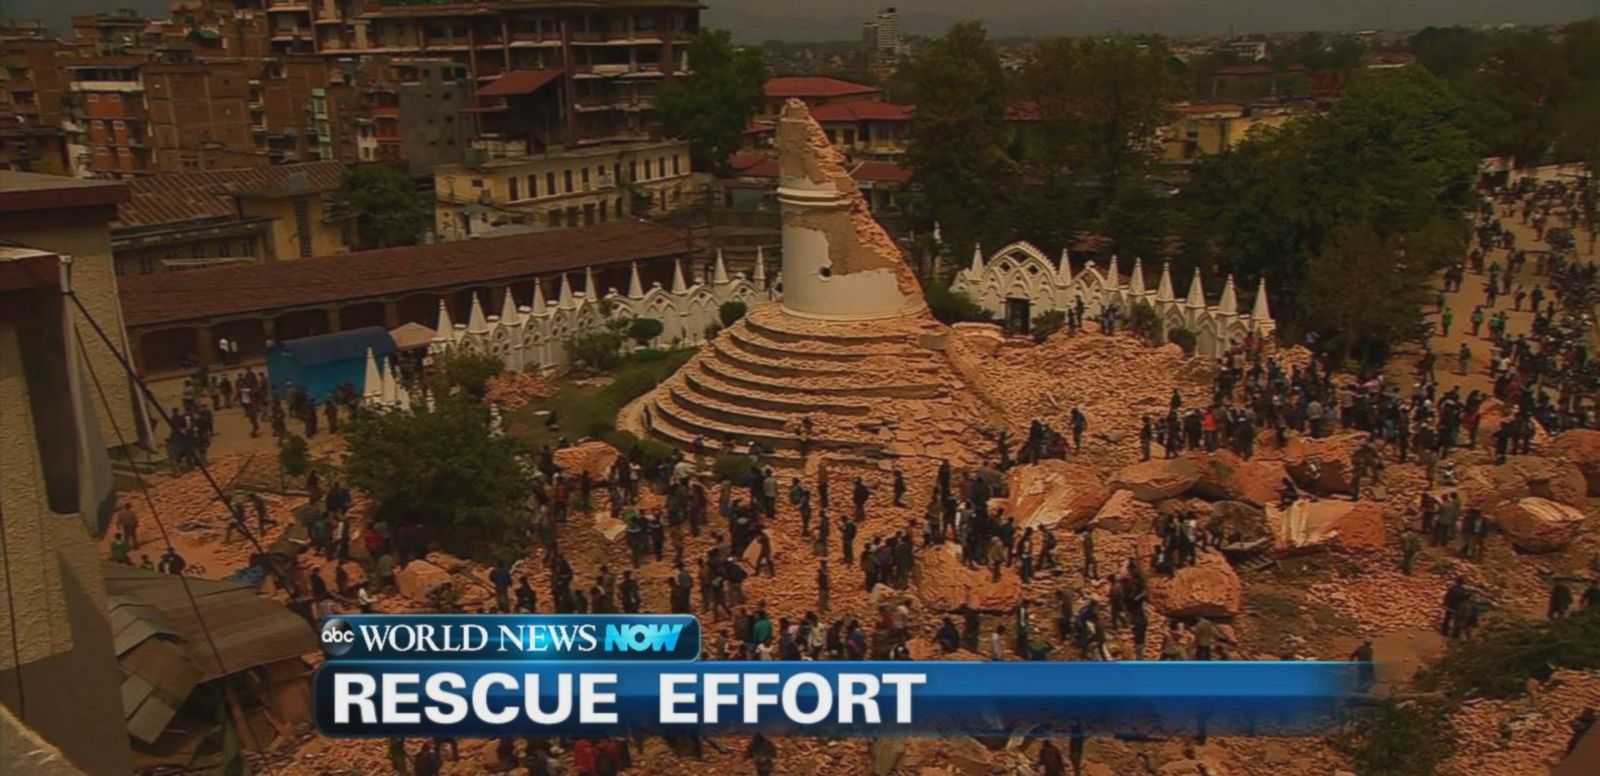 VIDEO: Rescue workers scramble to save lives in the rubble of the deadly earthquake that hit over the weekend in Nepal.